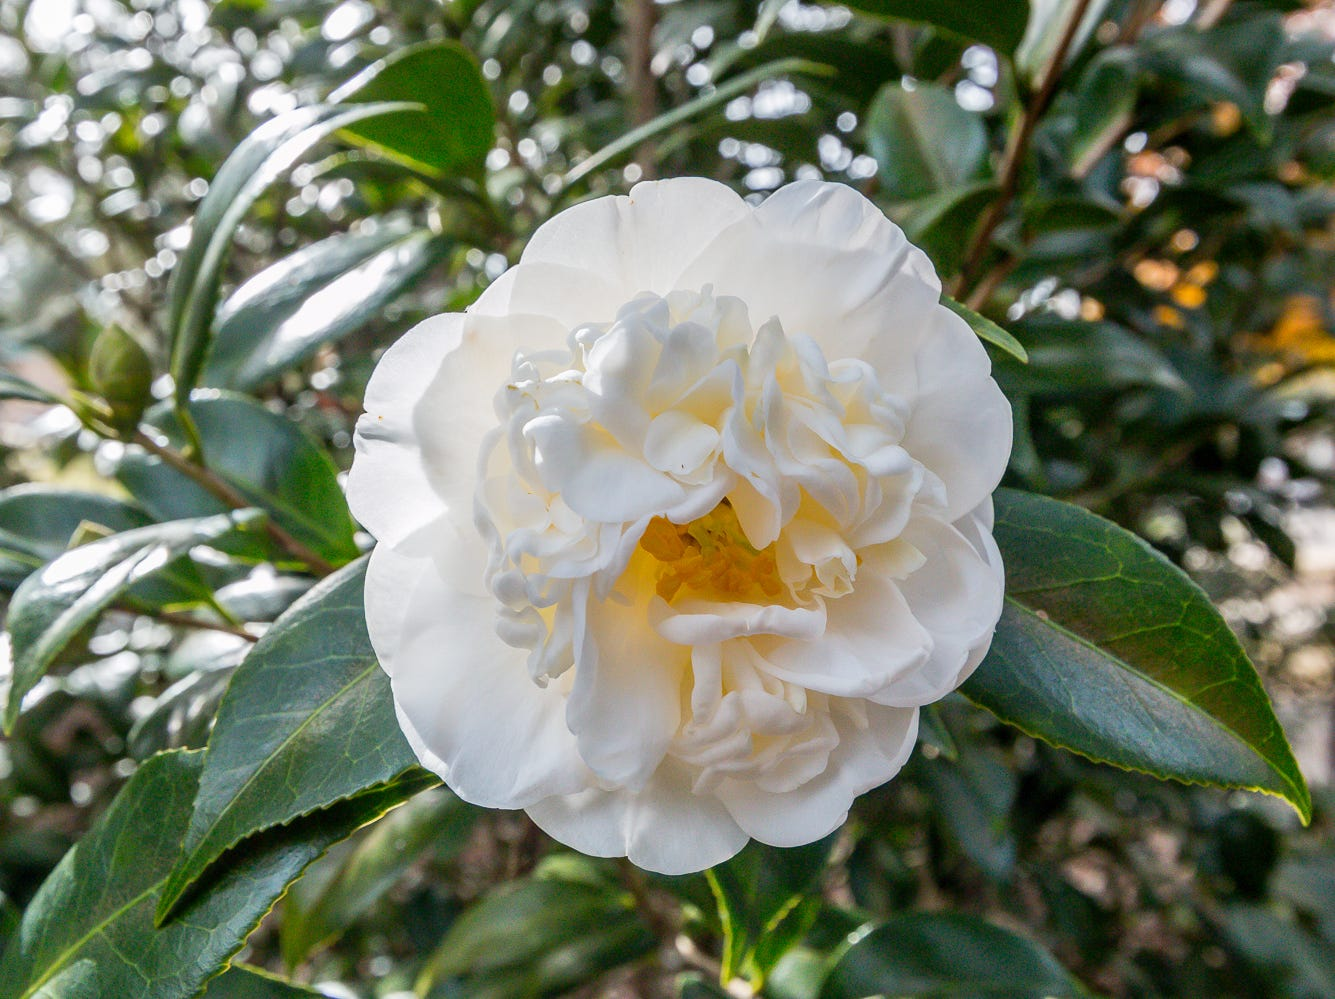 A blooming Man Size camellia is on display in the University of West Florida's Camellia Garden on Wednesday, November 28, 2018. The garden is located just east of Building 41 for Pyschology and Behavioral Sciences.